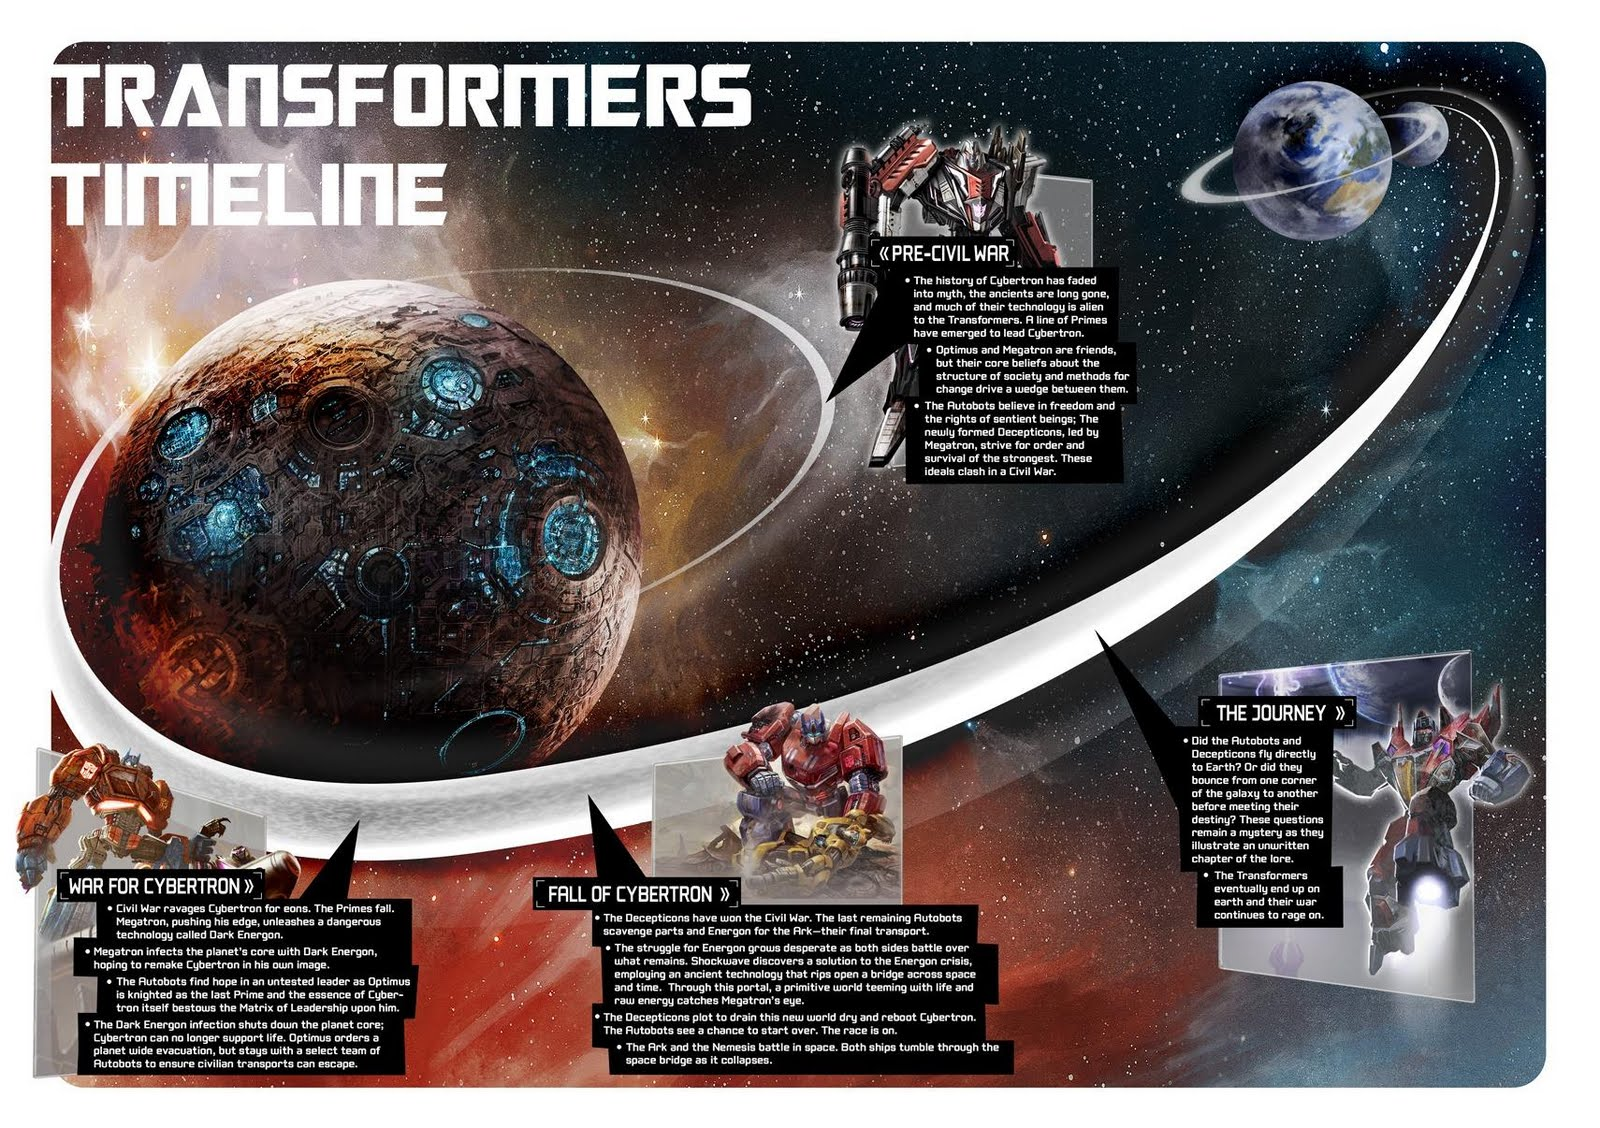 transformers live action movie blog  tflamb   fall of cybertron  jazz  tf timeline and license